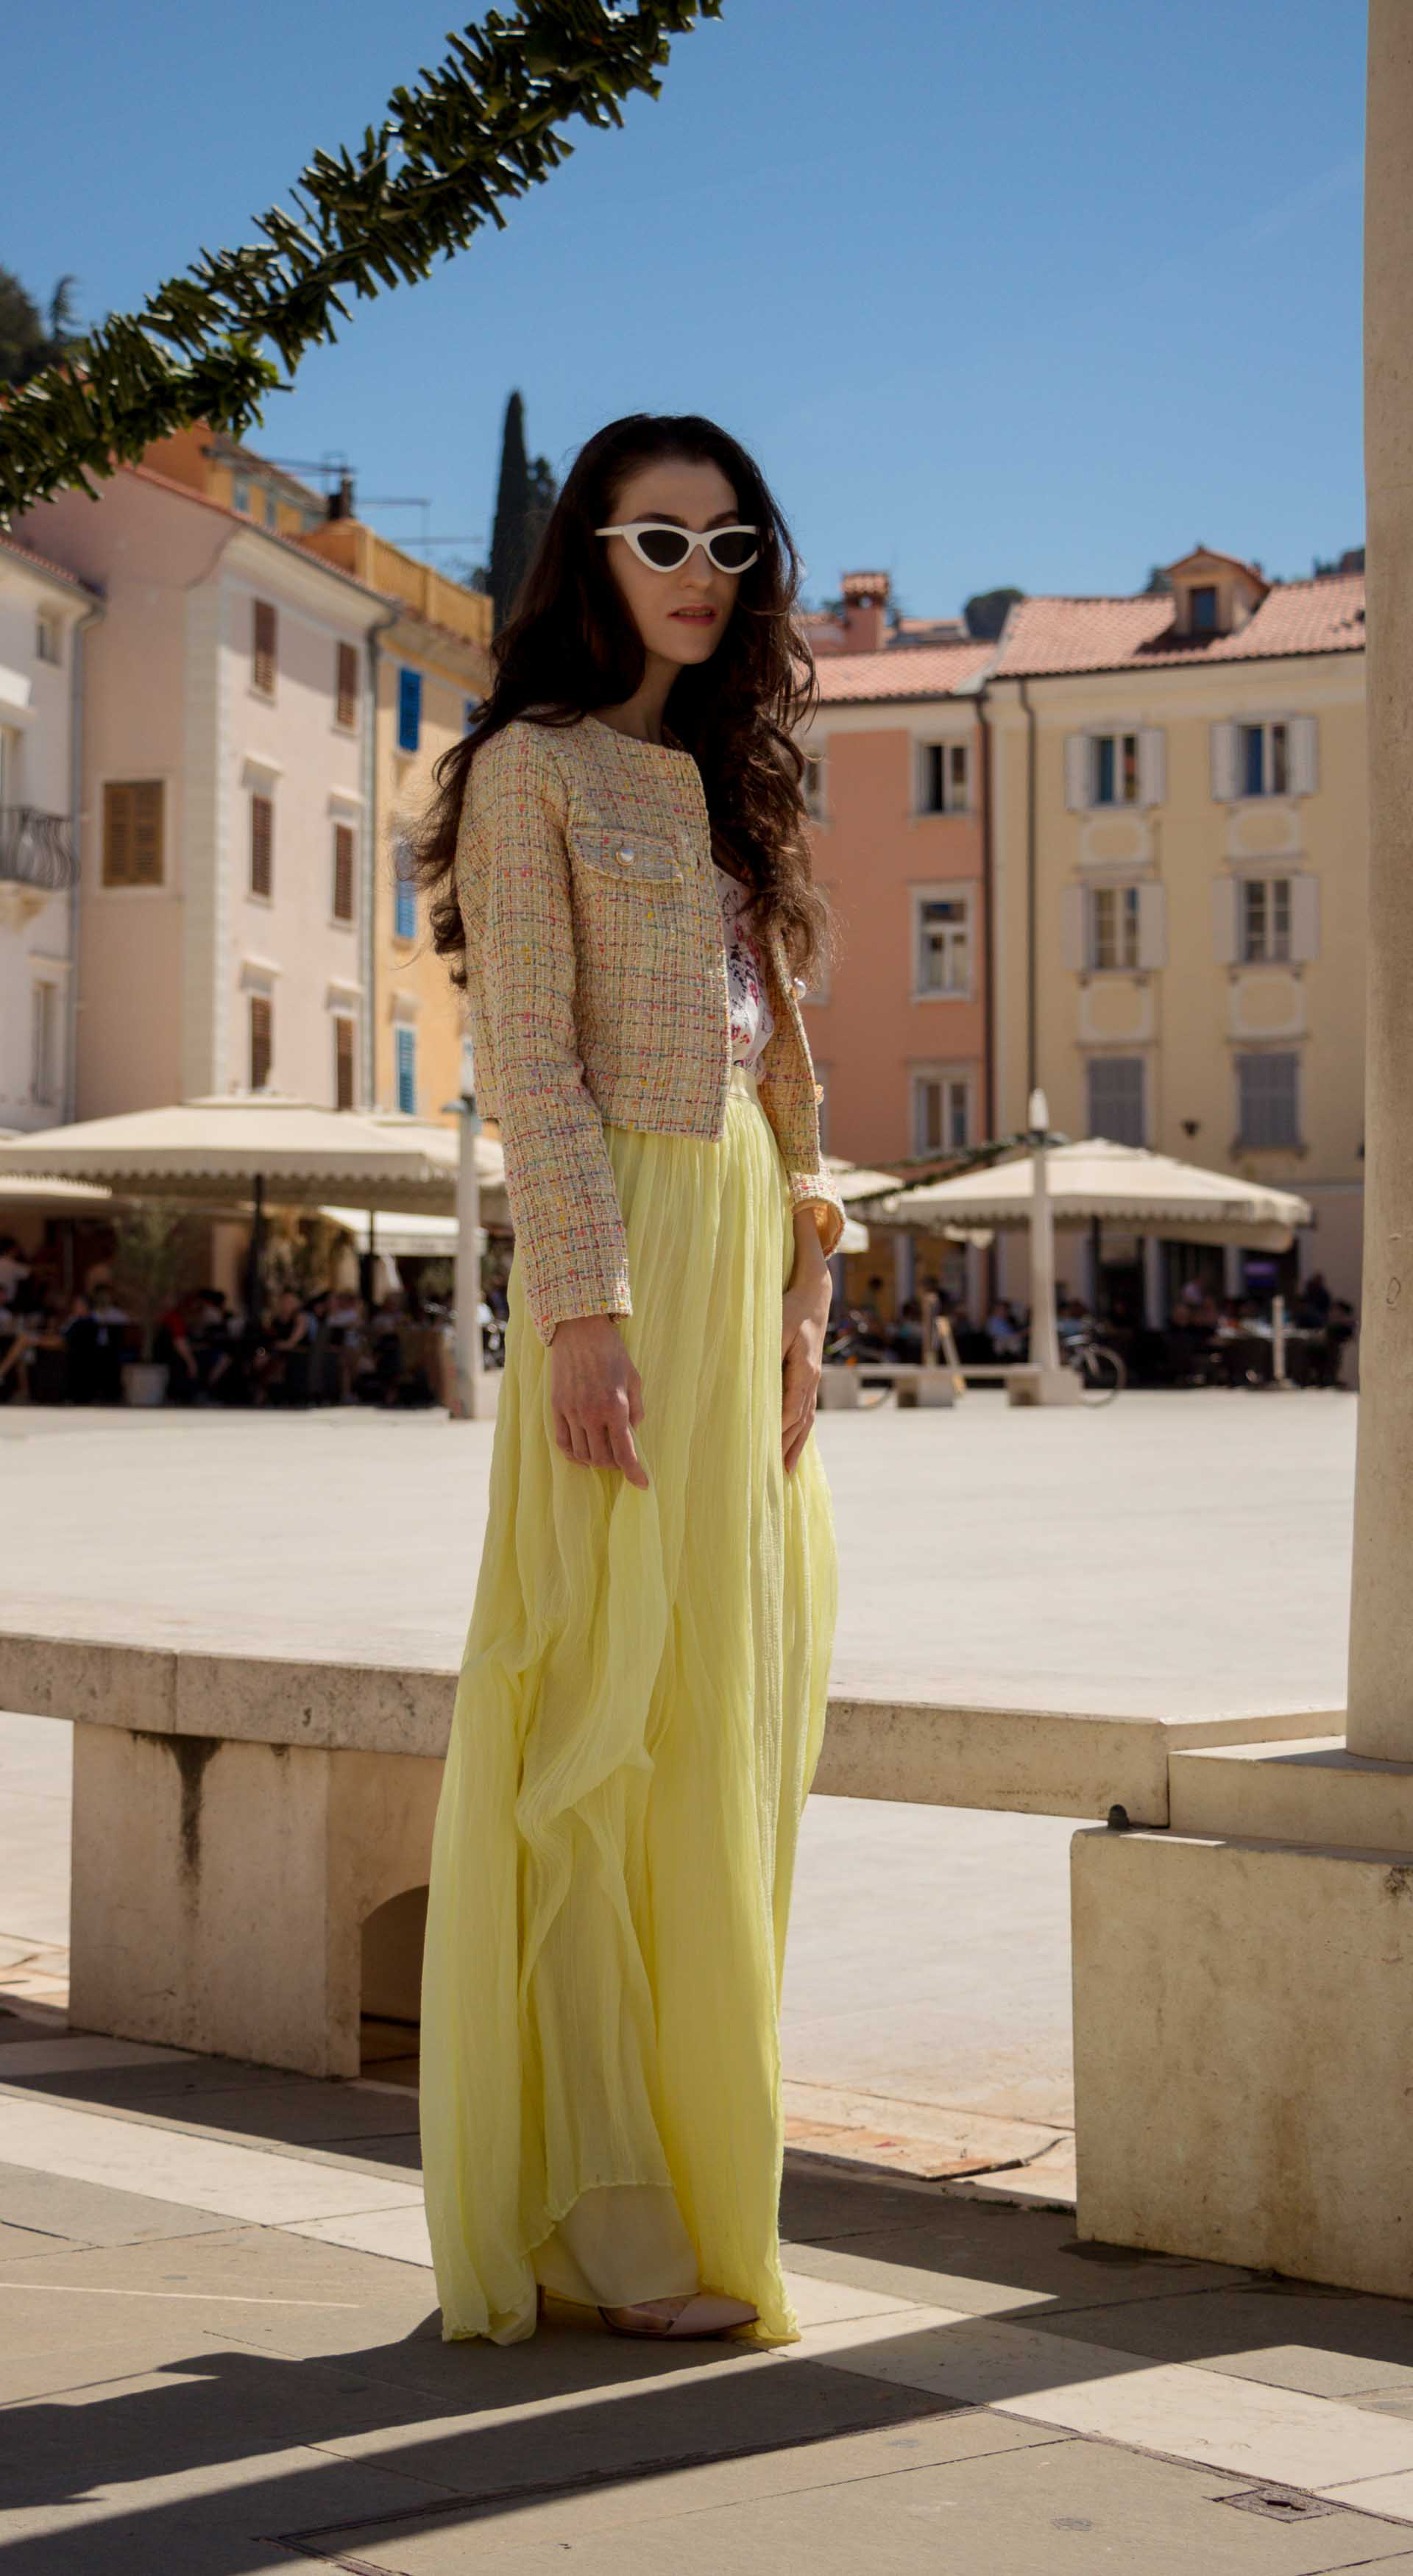 Veronika Lipar Fashion Blogger of Brunette from Wall Street wearing maxi yellow tulle skirt from Needle & Thread, short yellow tweed jacket from Storets, floral sik top, blush Gianvito Rossi plexi pumps, white shoulder bag while standing at the square in Piran